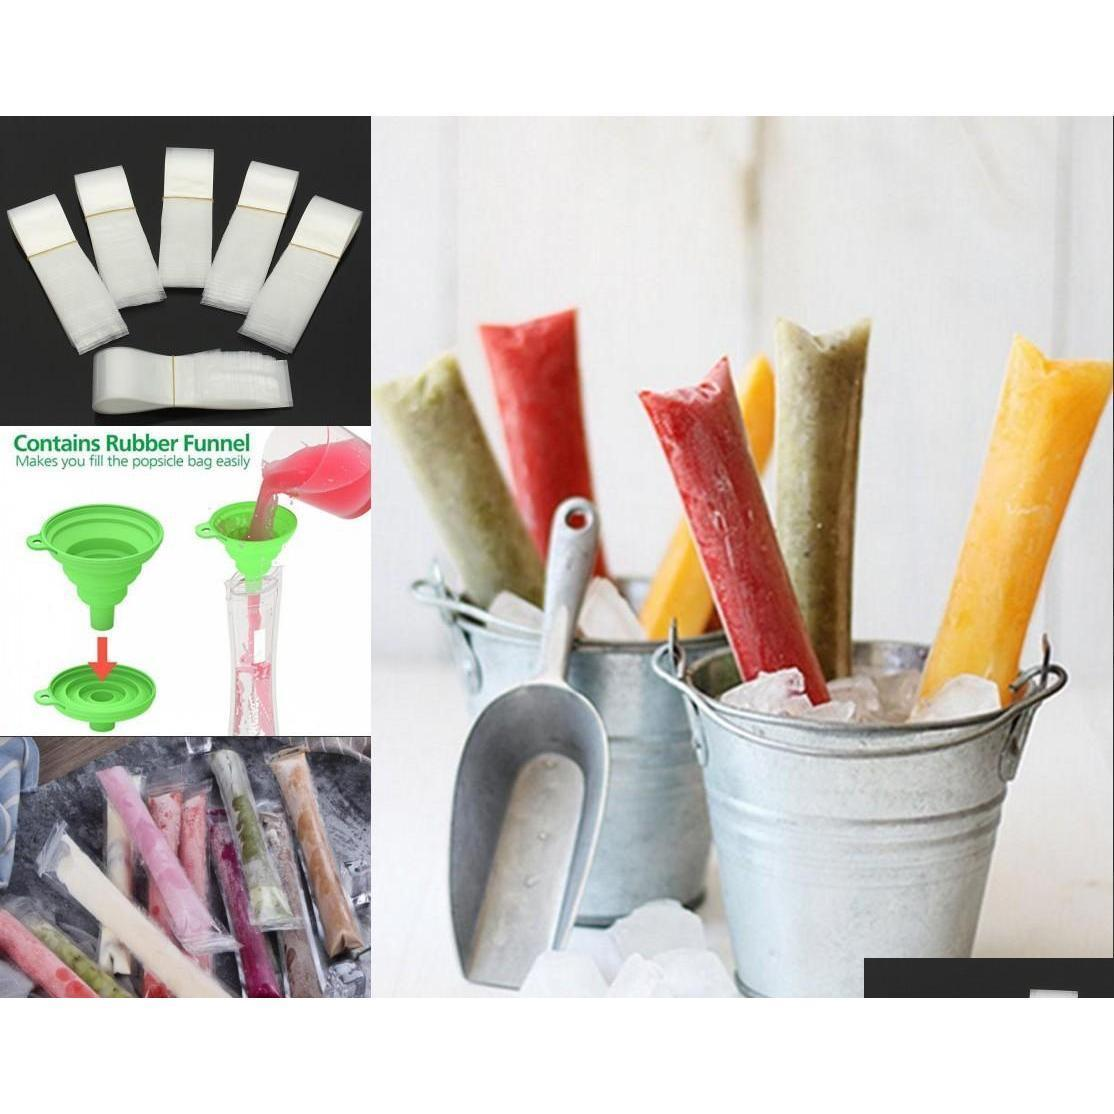 Kitchen Tools Kitchen, Dining Bar Home & Garden Drop Delivery 2021 Popsicle Molds Bags Mold Pouch With Zip Seals Funnel Diy Zip-Top Pop Pouch